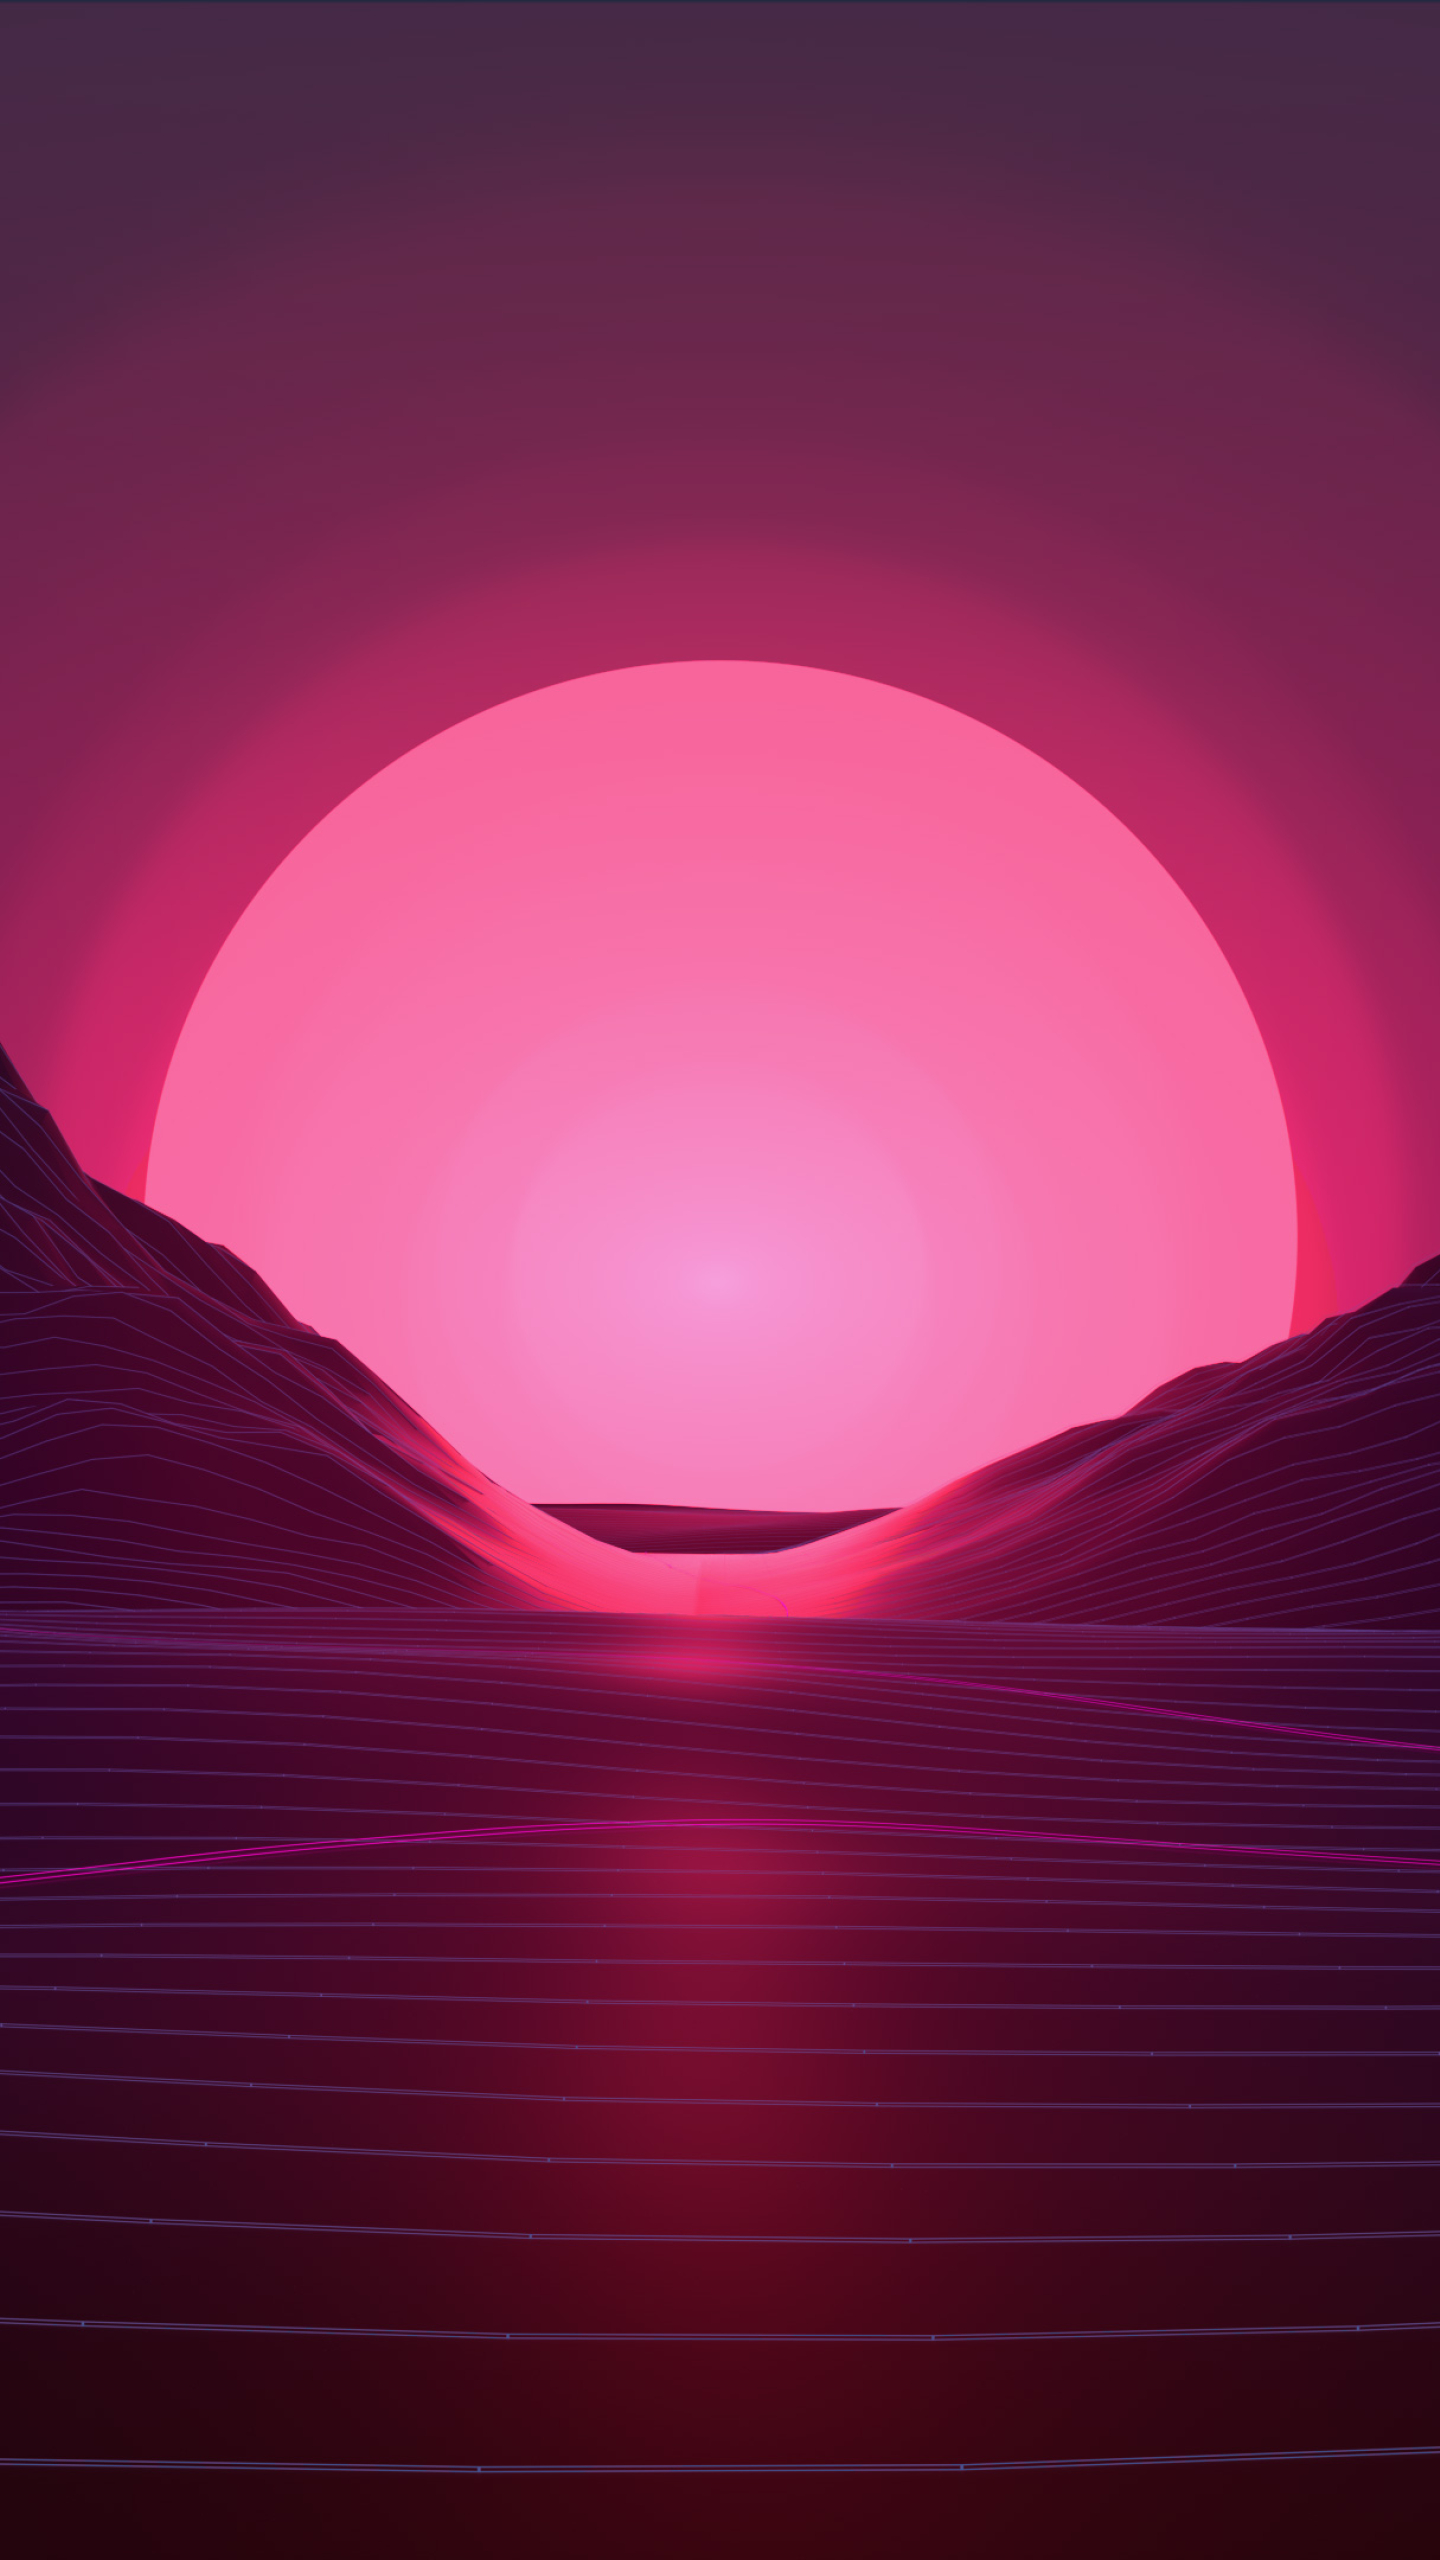 Sun In Retro Wave Mountains Hd 4k Wallpaper